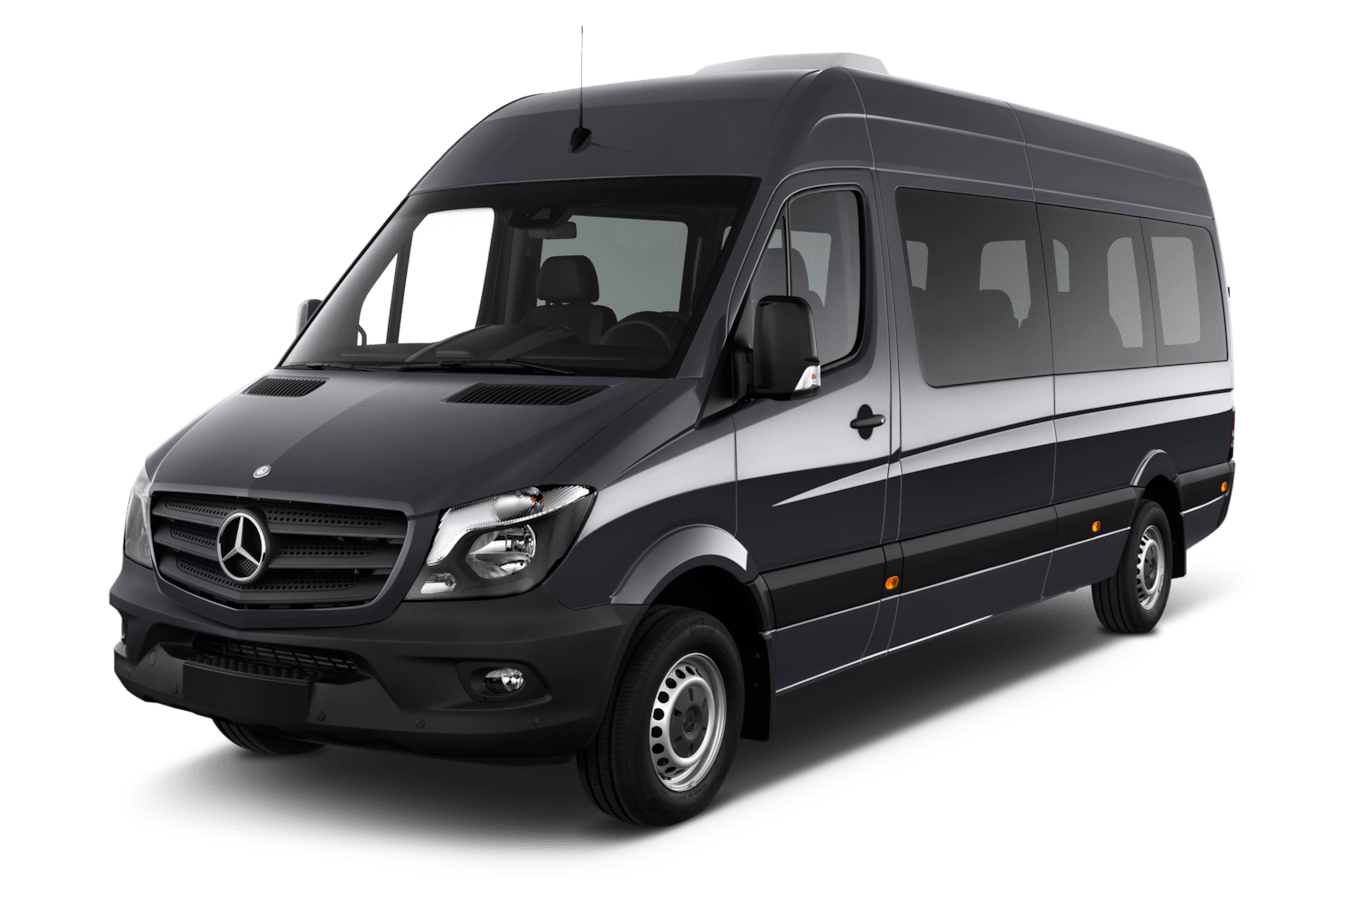 hight resolution of 2015 mercedes benz sprinter reviews and rating motor trend 18 19 2015 mercedes sprinter wiring diagram